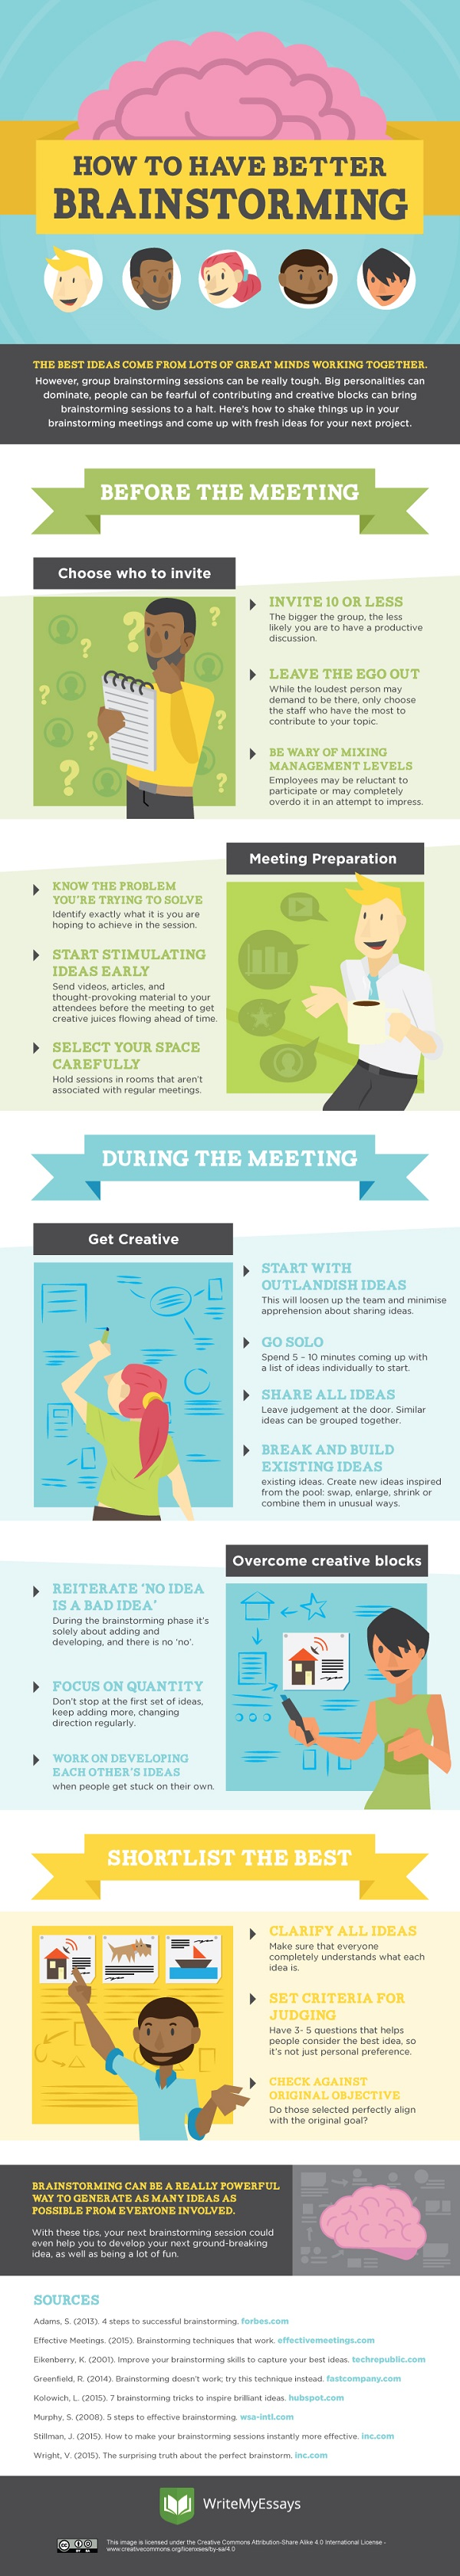 how to create productive teams essay